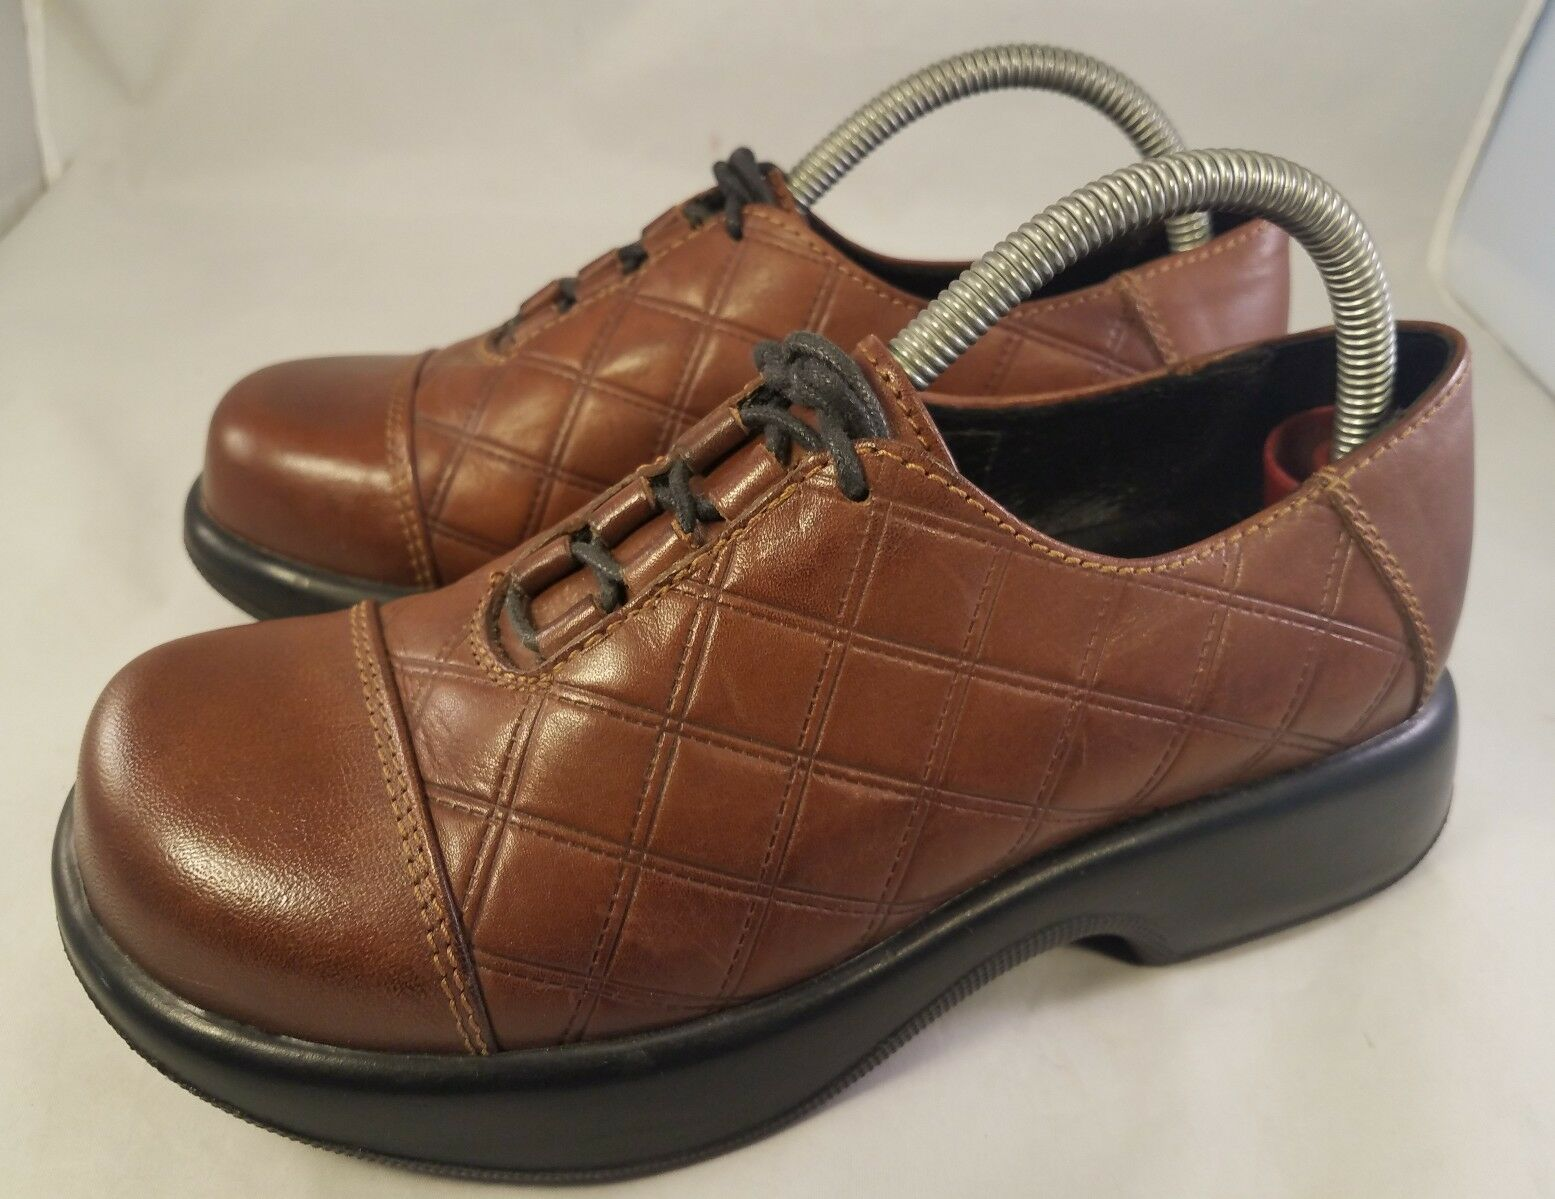 RARE QUILTED DANSKO Damenschuhe Schuhe BROWN QUILTED RARE LACES OXFORDS SIZE 37/ US 7 3a1e2b